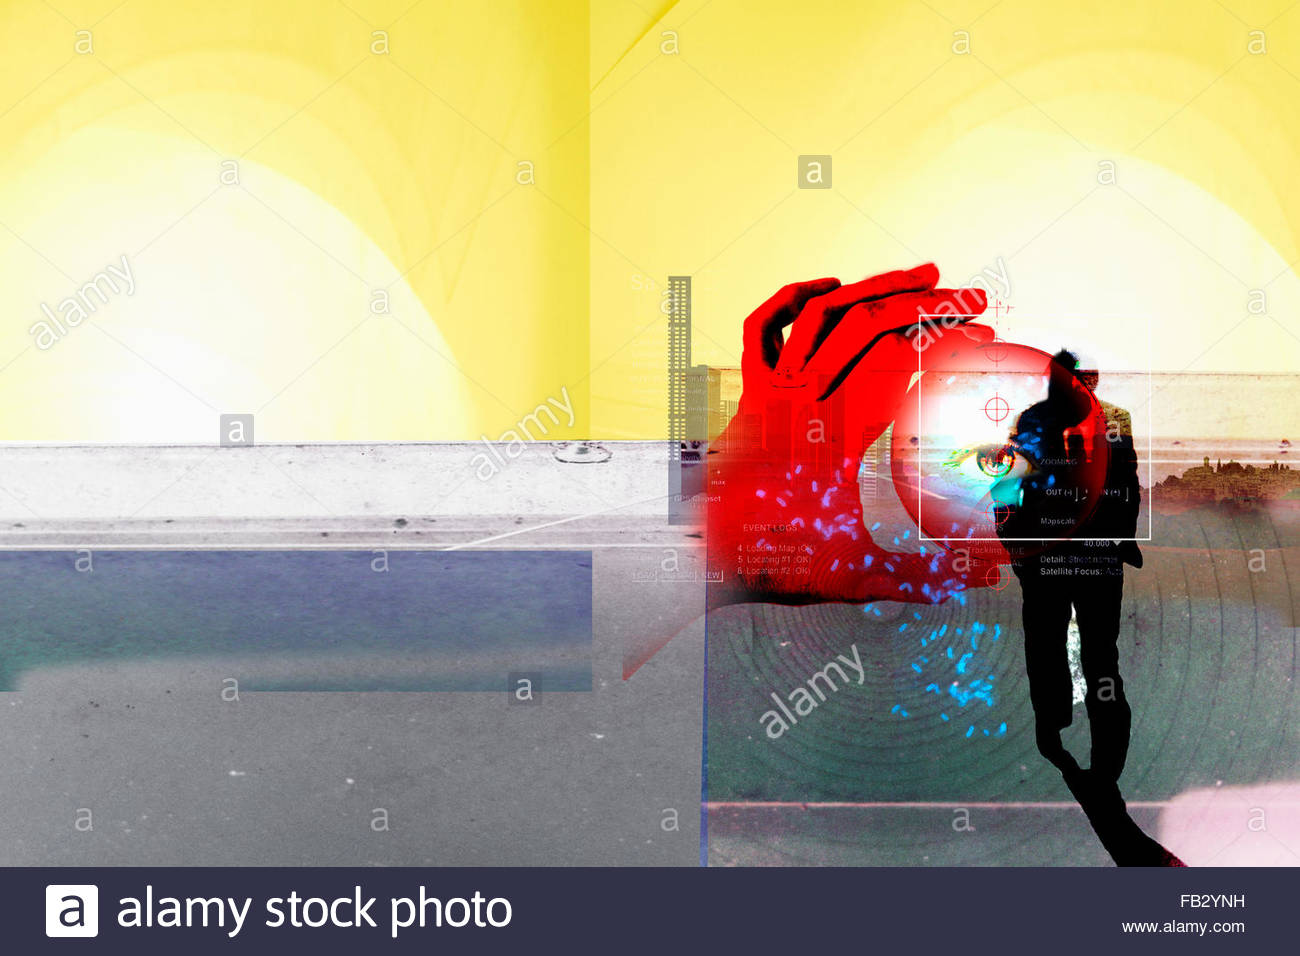 Global positioning system data and magnifying glass with human eye over businessman walking - Stock Image